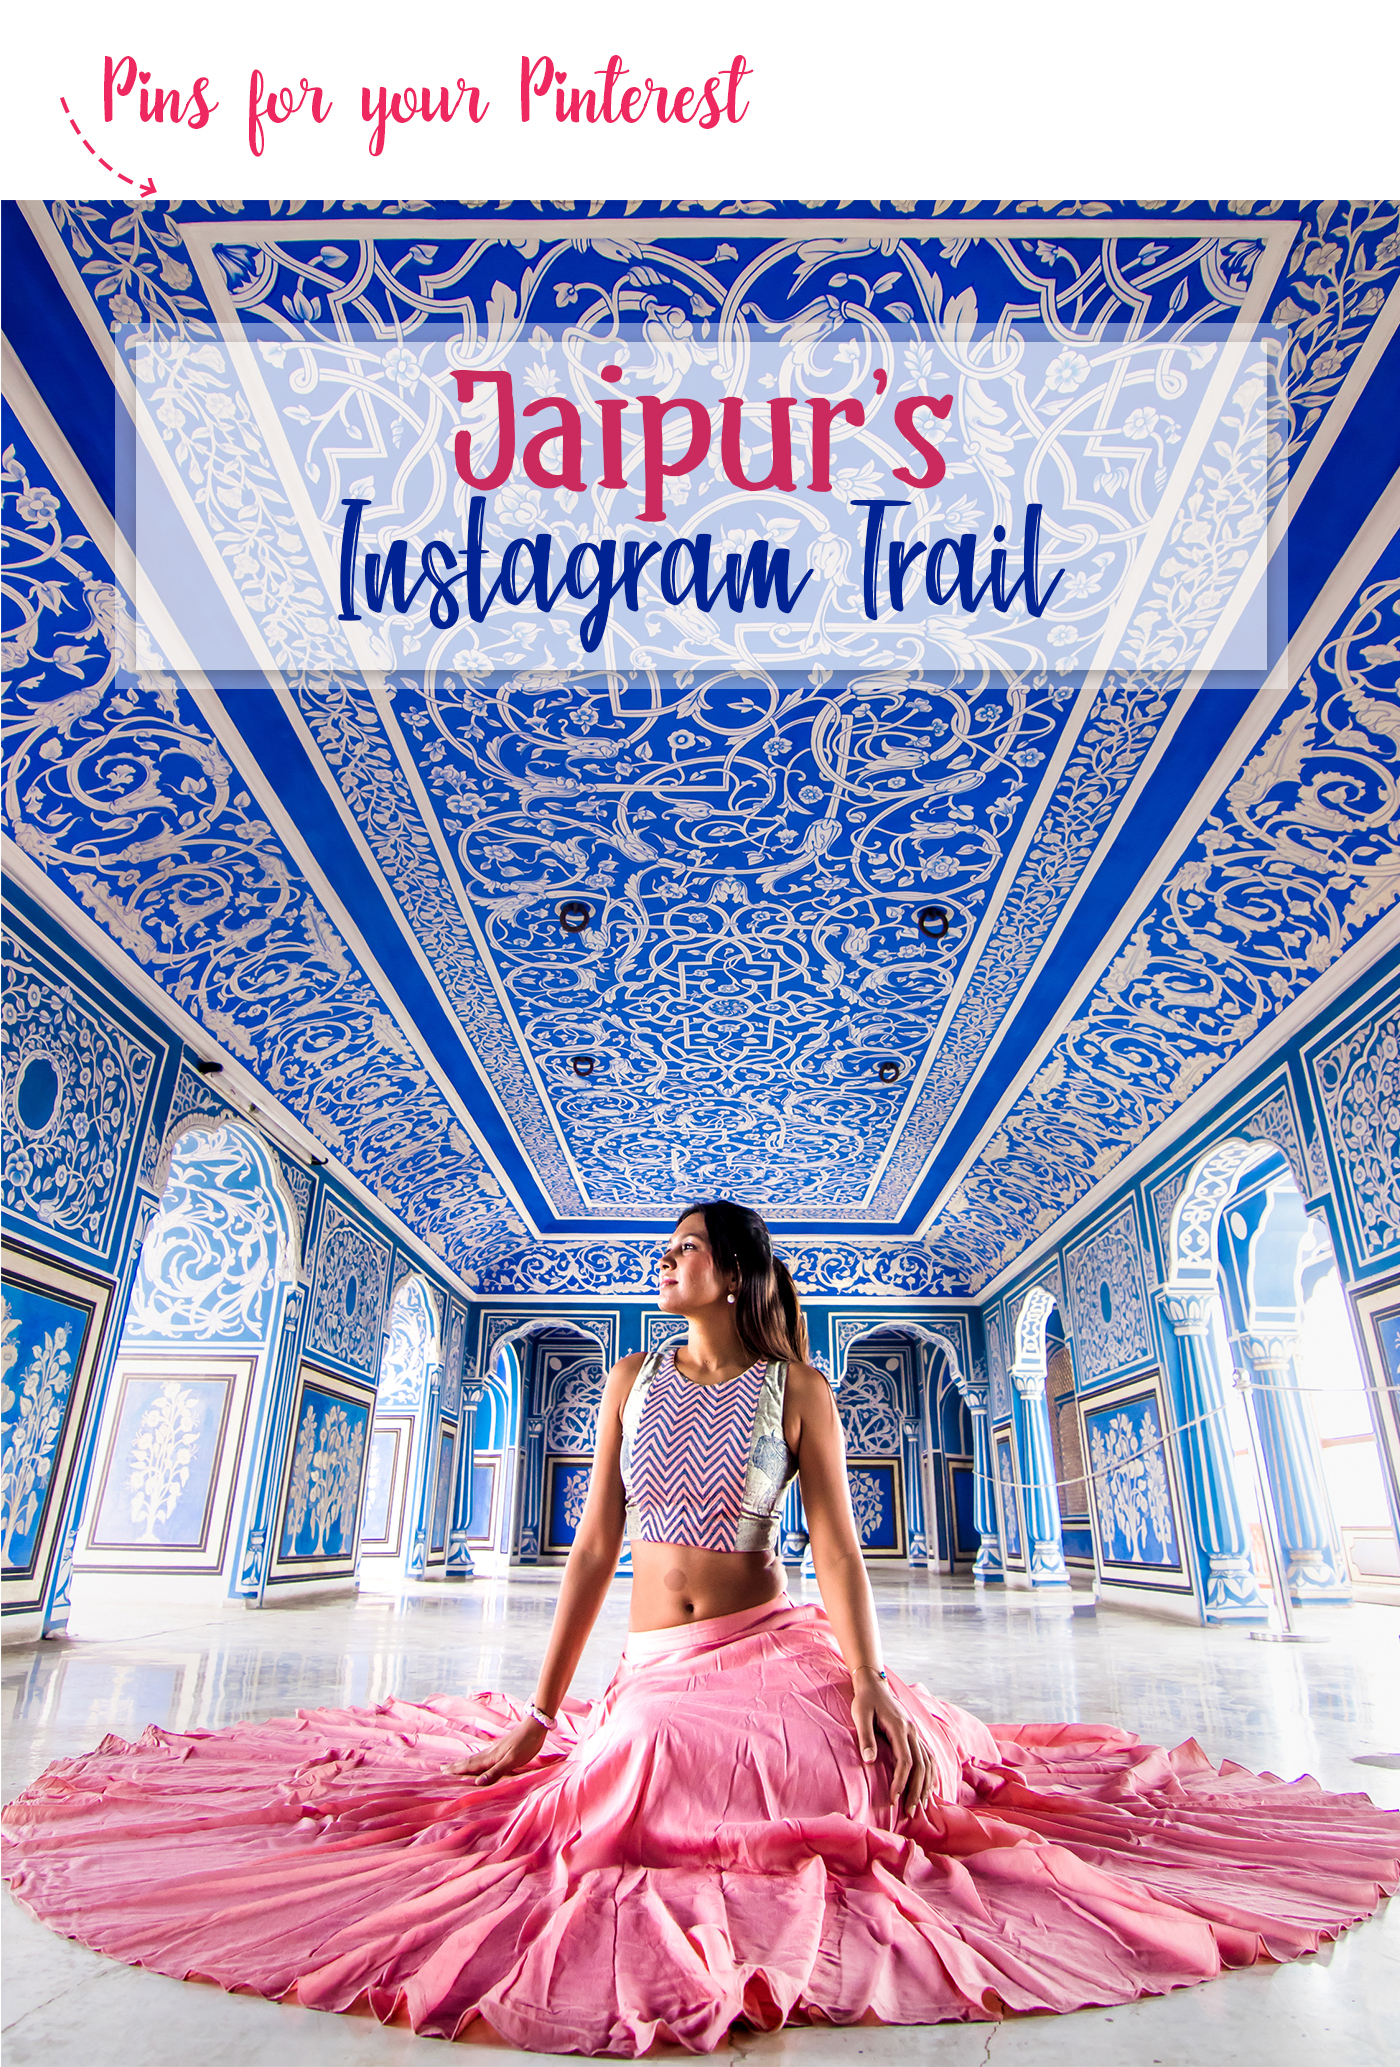 Jaipur_Instagram_Photo_Trail_Itinerary__DIY_Pink_City_Rajasthan_Travel_Blog_India_Blog_Blogger_Guide_Asia_Palaces_Forts_Culture